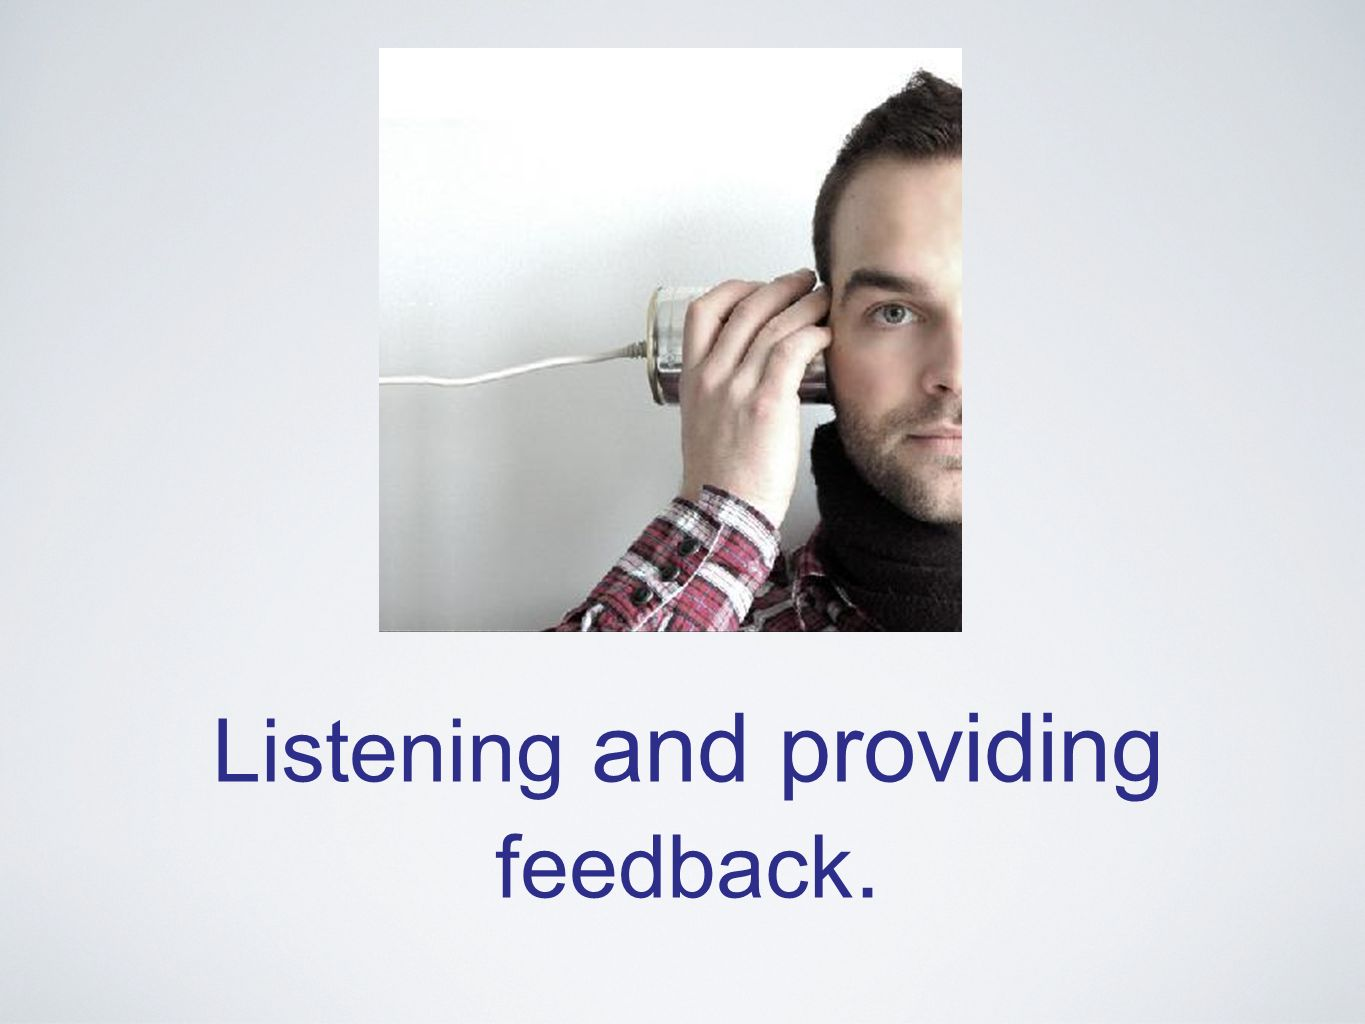 Listening and providing feedback.